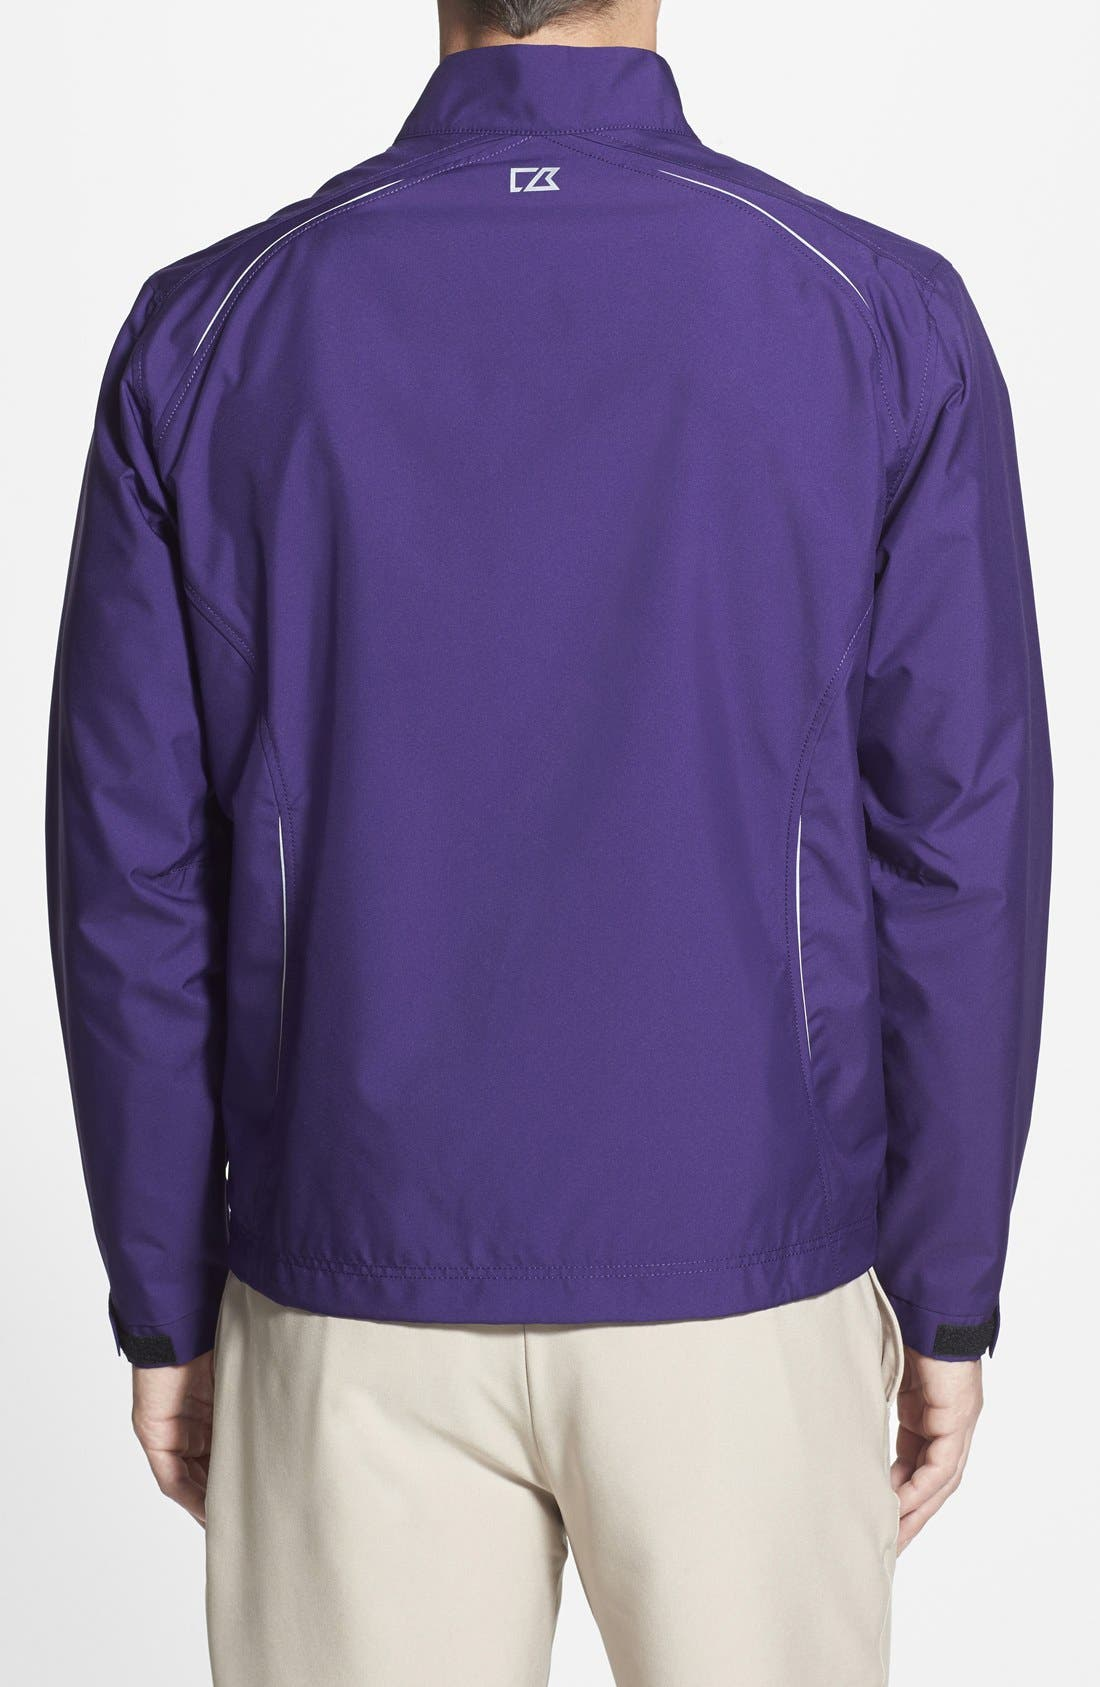 Alternate Image 2  - Cutter & Buck Minnesota Vikings - Beacon WeatherTec Wind & Water Resistant Jacket